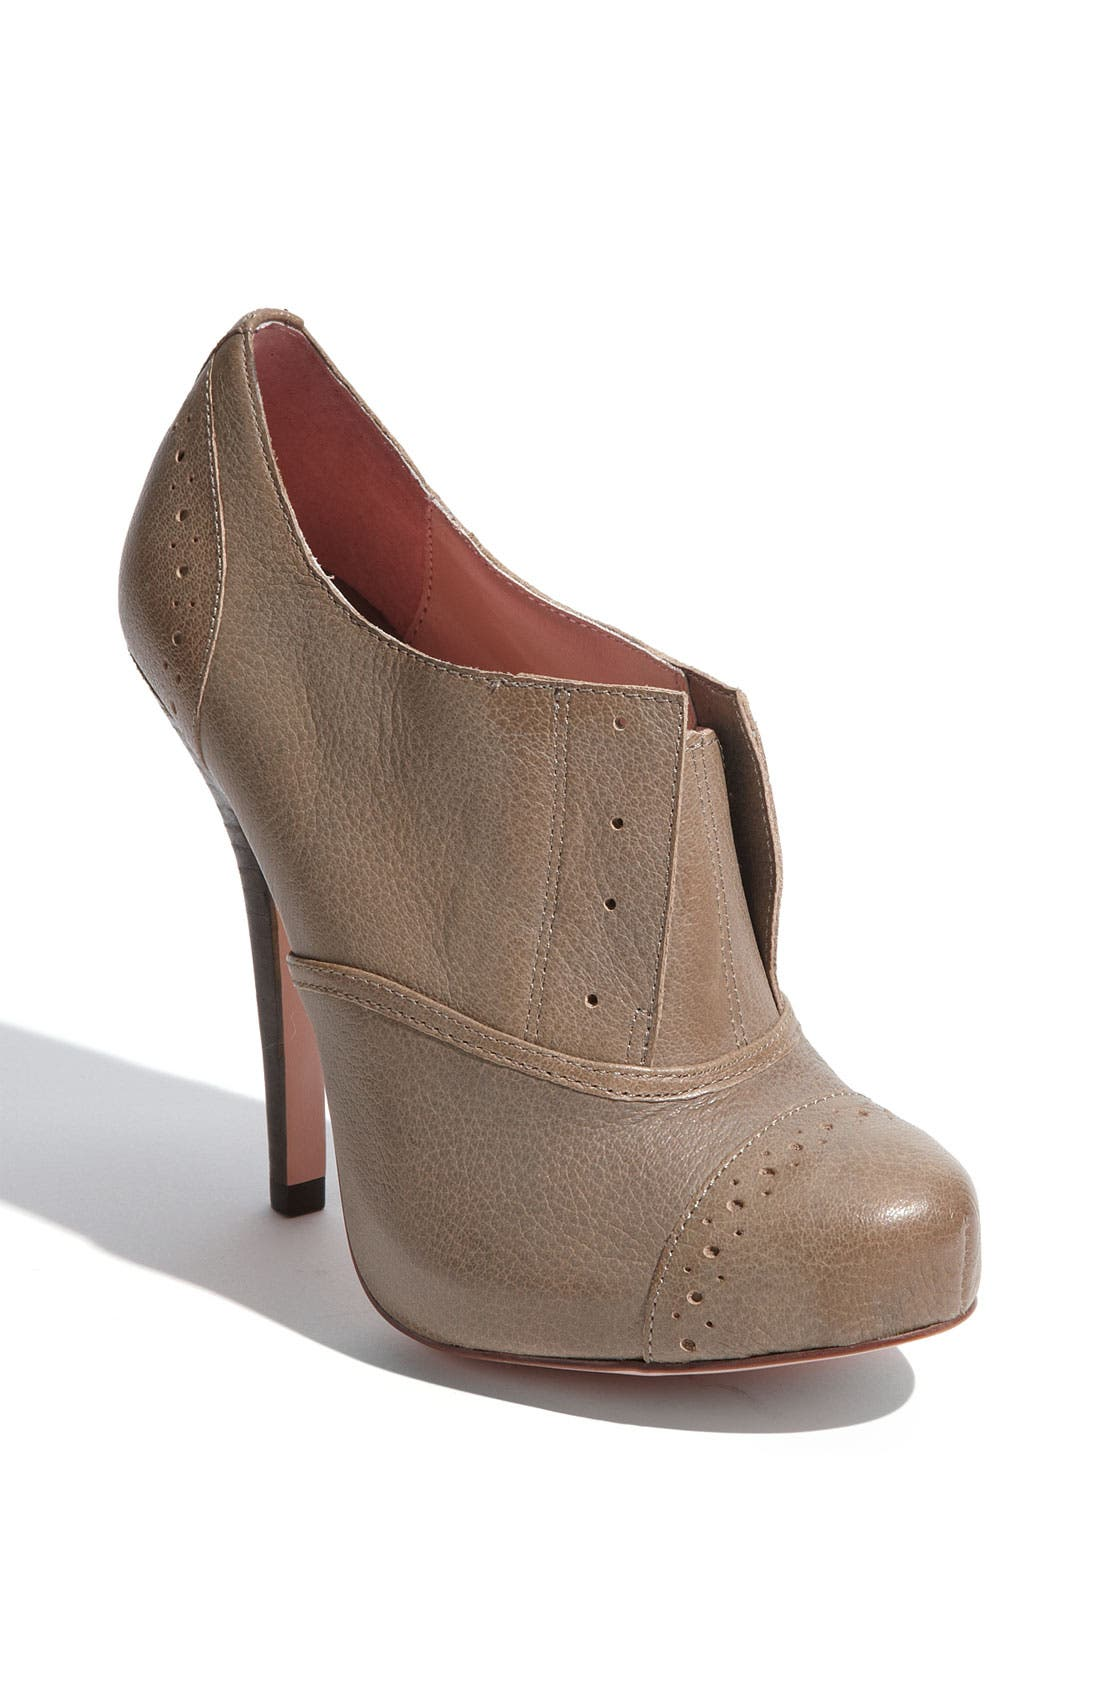 Alternate Image 1 Selected - Betsey Johnson 'Derbby' Bootie